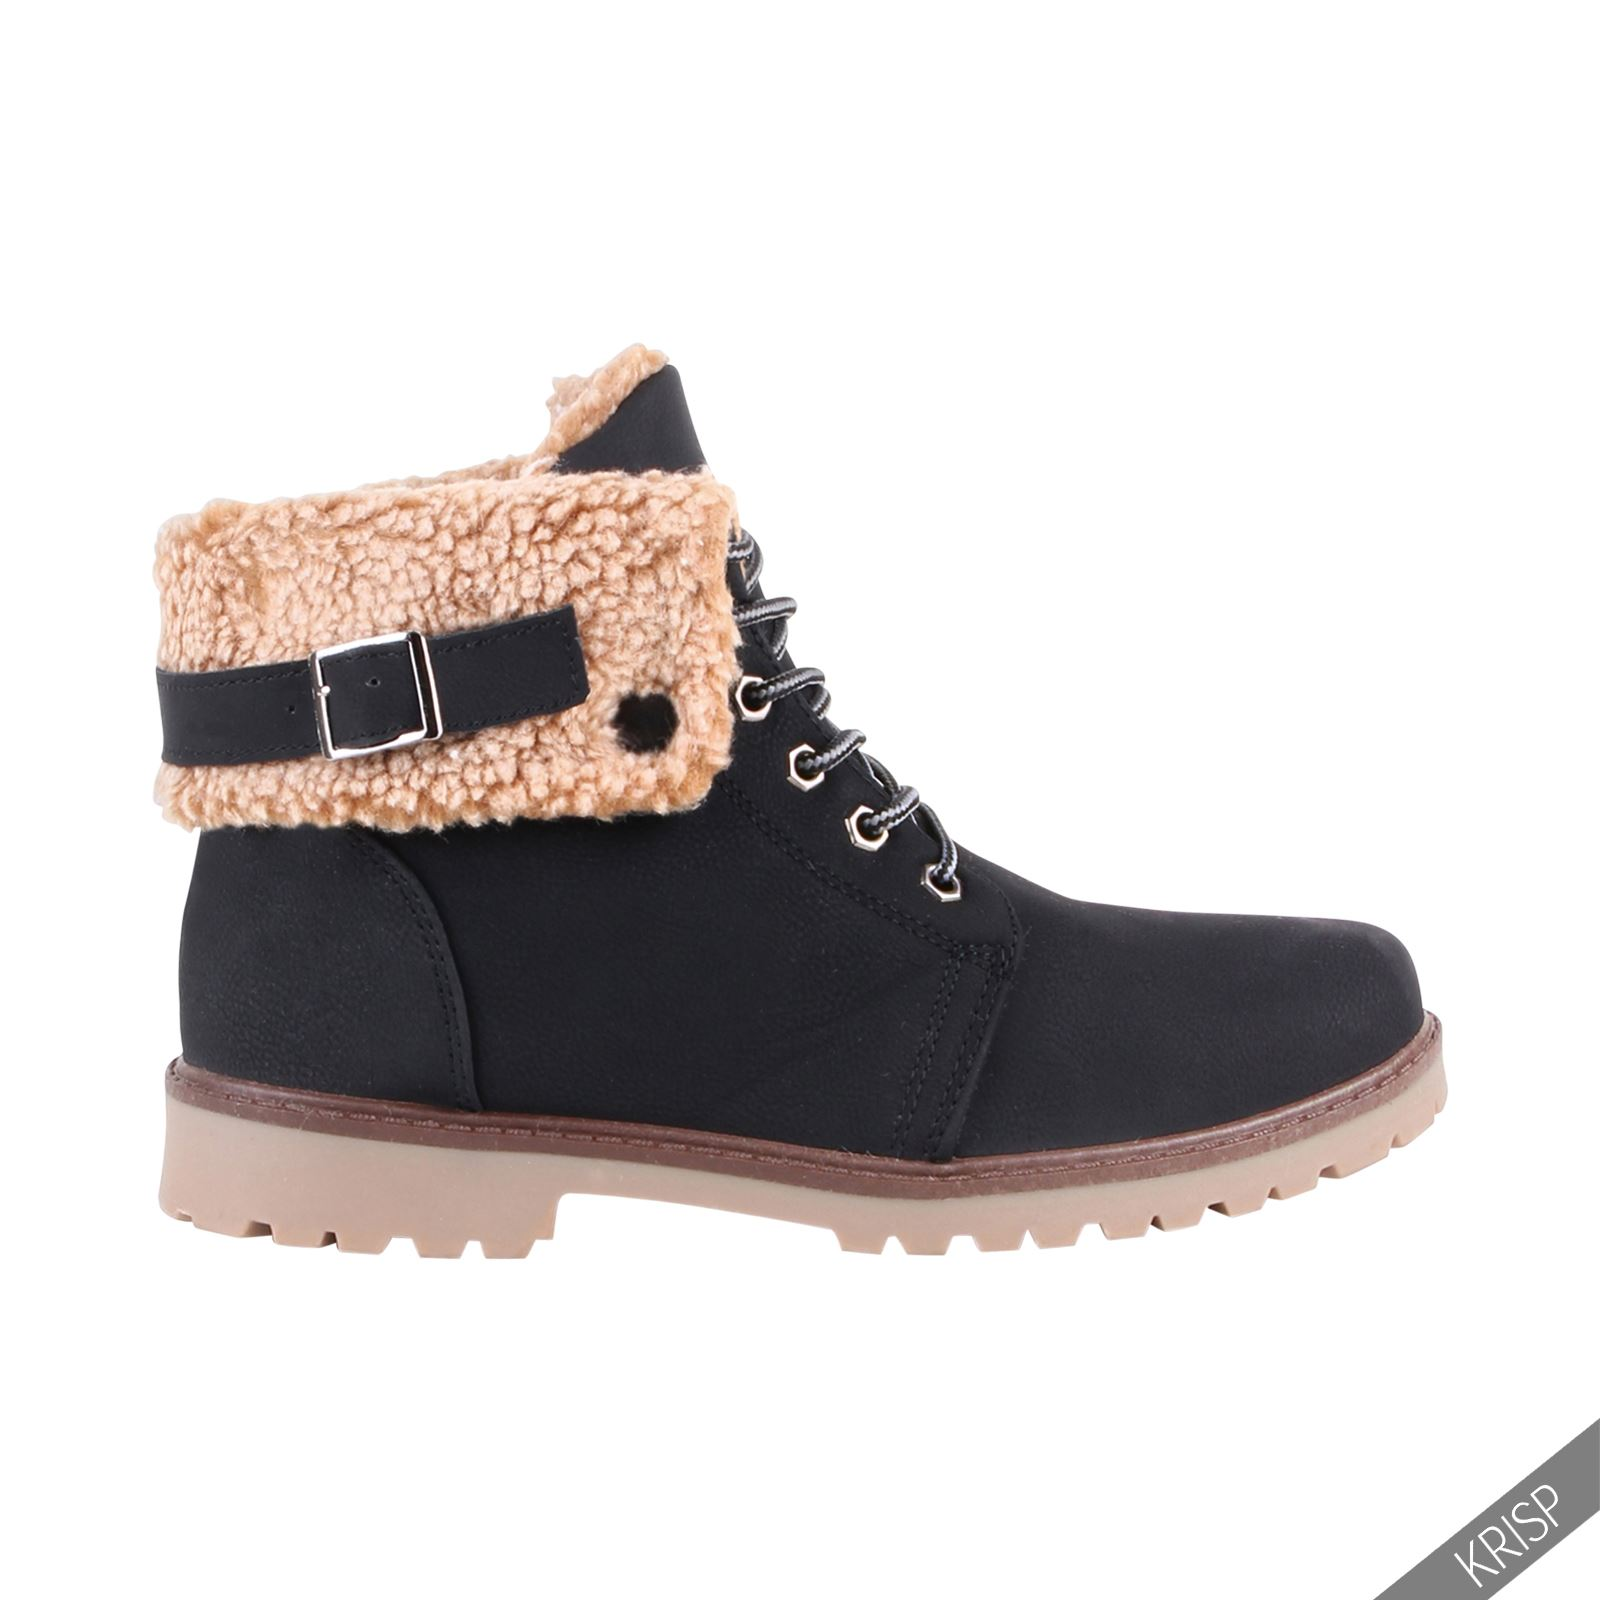 Simple Womens Black Leather Style Buckle Lace Up Flat Pixie Ankle Boots - From SPYLOVEBUY UK